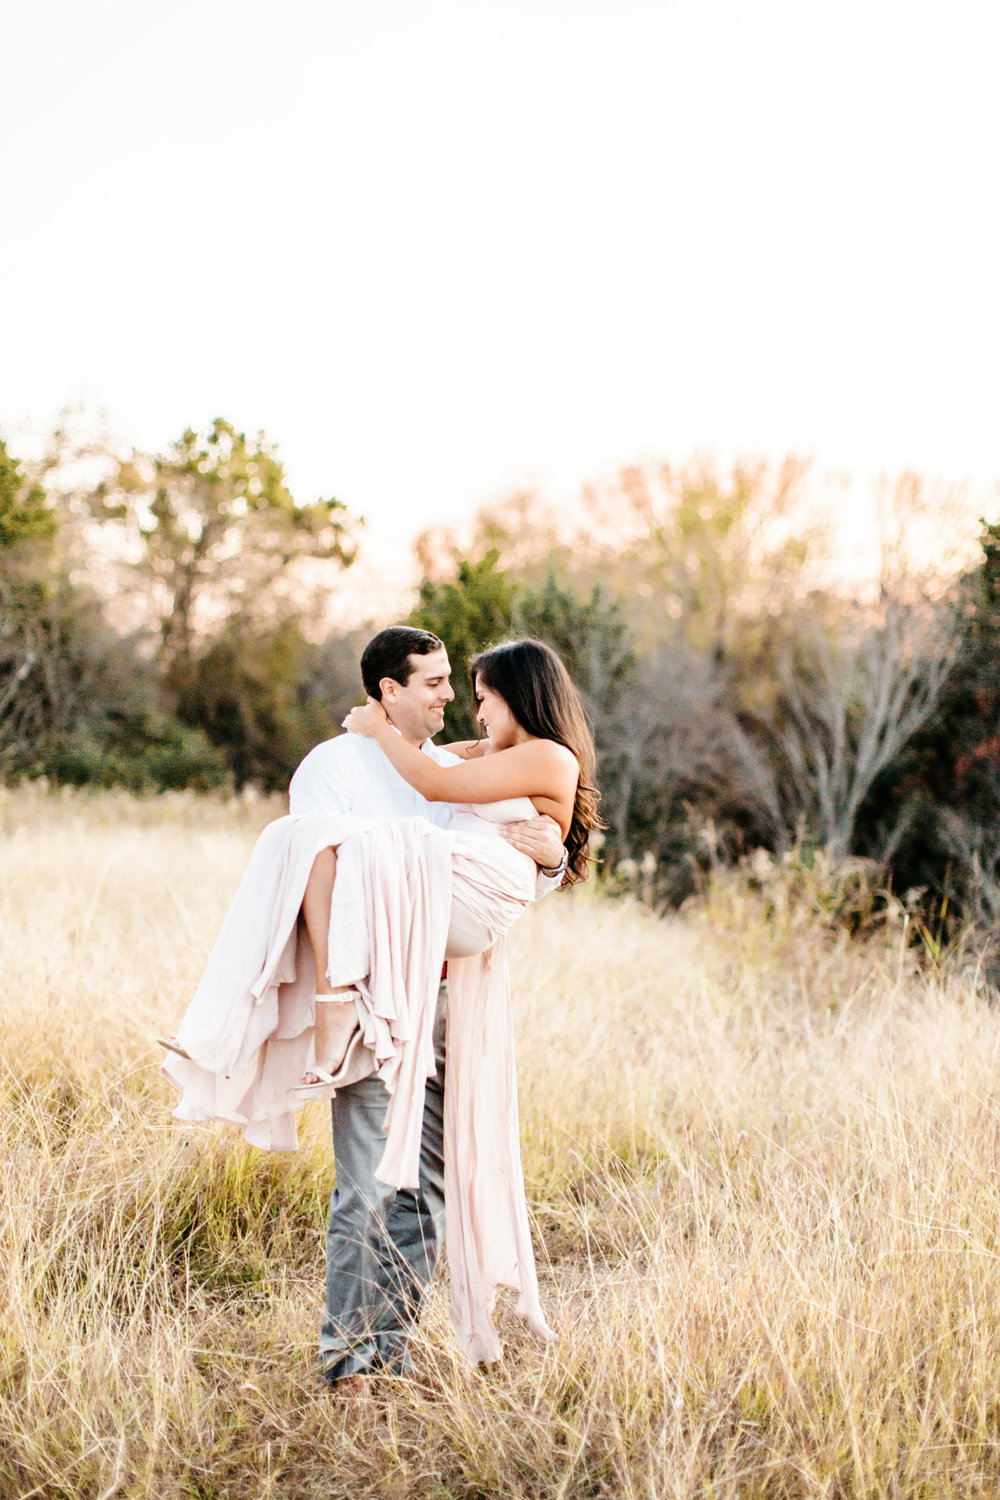 Alexa-Vossler-Photo_Dallas-Portrait-Photographer_White-Rock-Lake-Engagement-Session_Kaila-Gabe-68.jpg